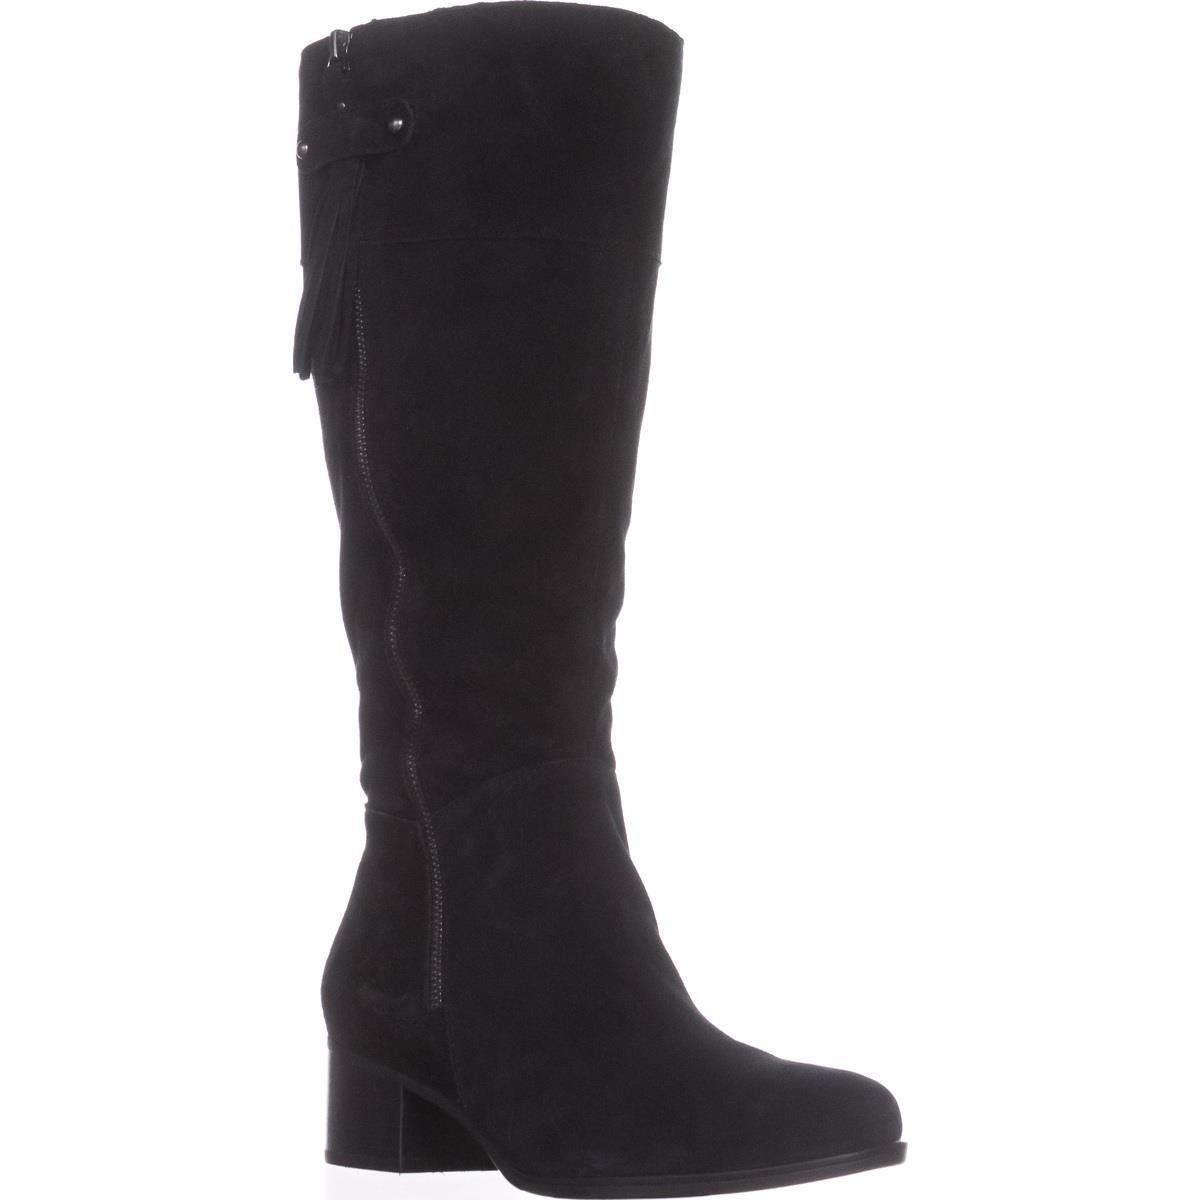 e4a1646ea0d6 Buy Knee-High Boots Naturalizer Women s Boots Online at Overstock ...